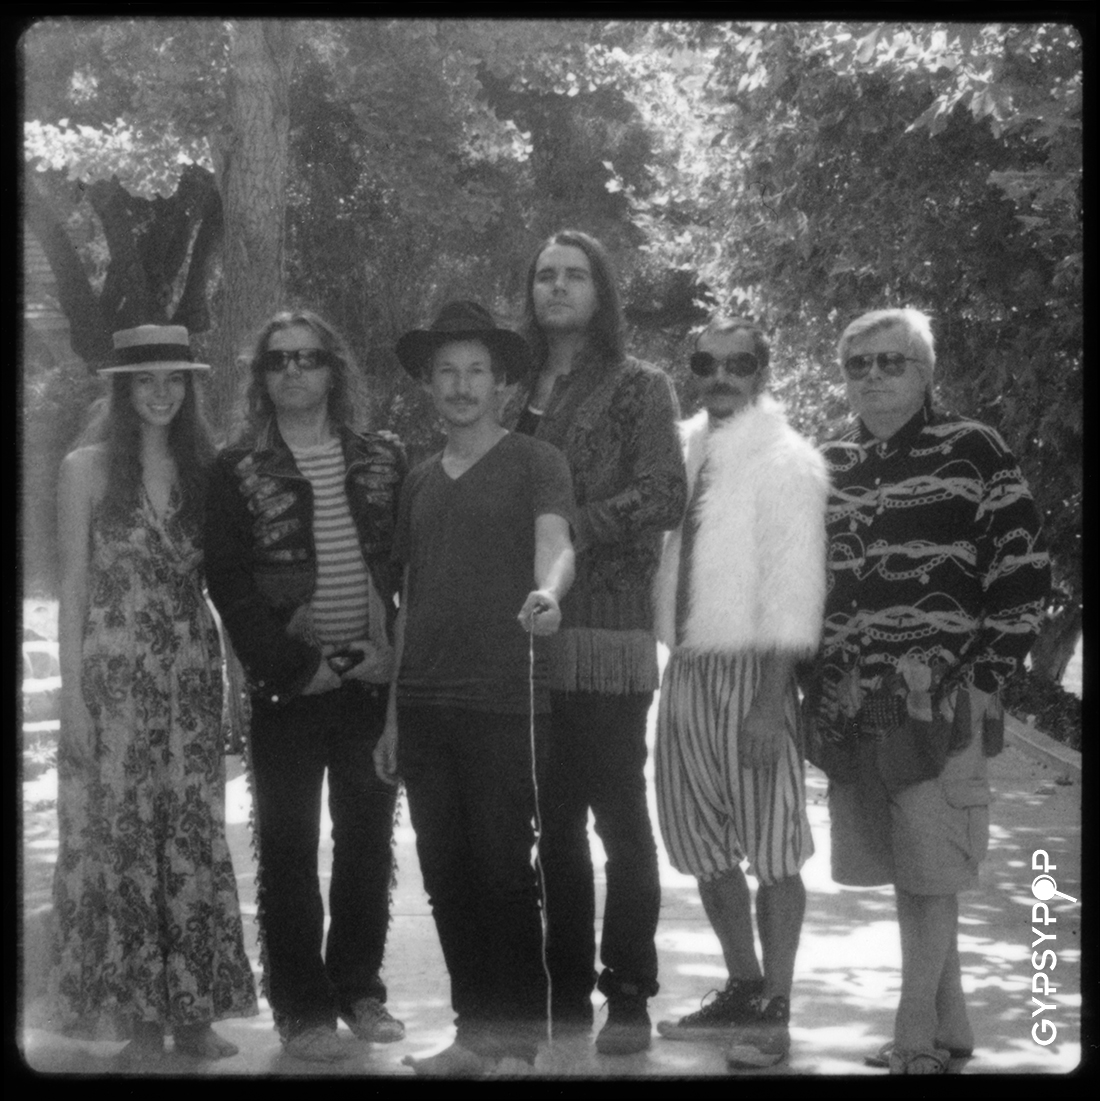 flying+balalaika+brothers+howlin+whale+gypsypop firemist fire mist polaroid music ojai santa barbara ventura many lives bad spell op op romale gypsy russian gypsies ukraine fur coat zhenya rock.jpg.jpg